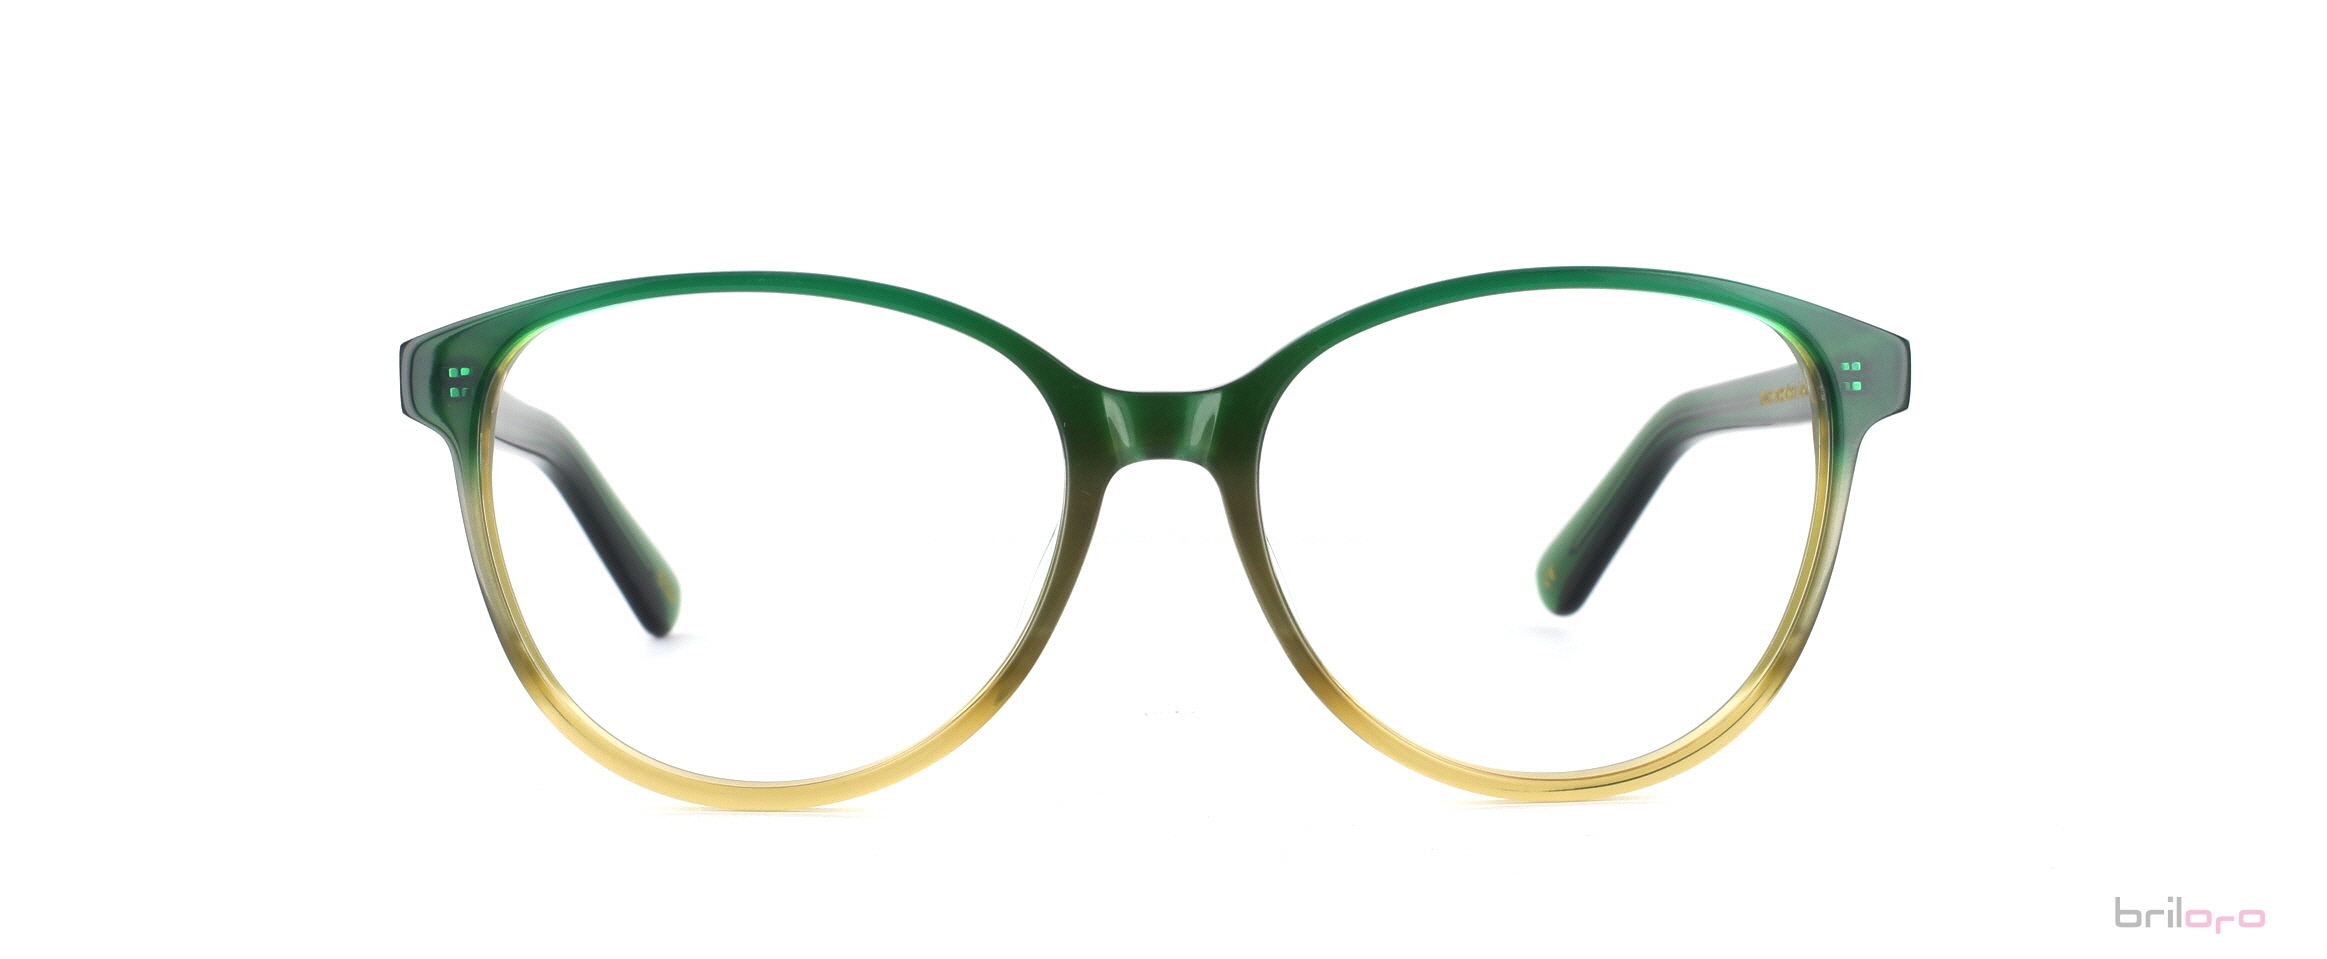 Nazario Dream Green Brille für Herbsttypen